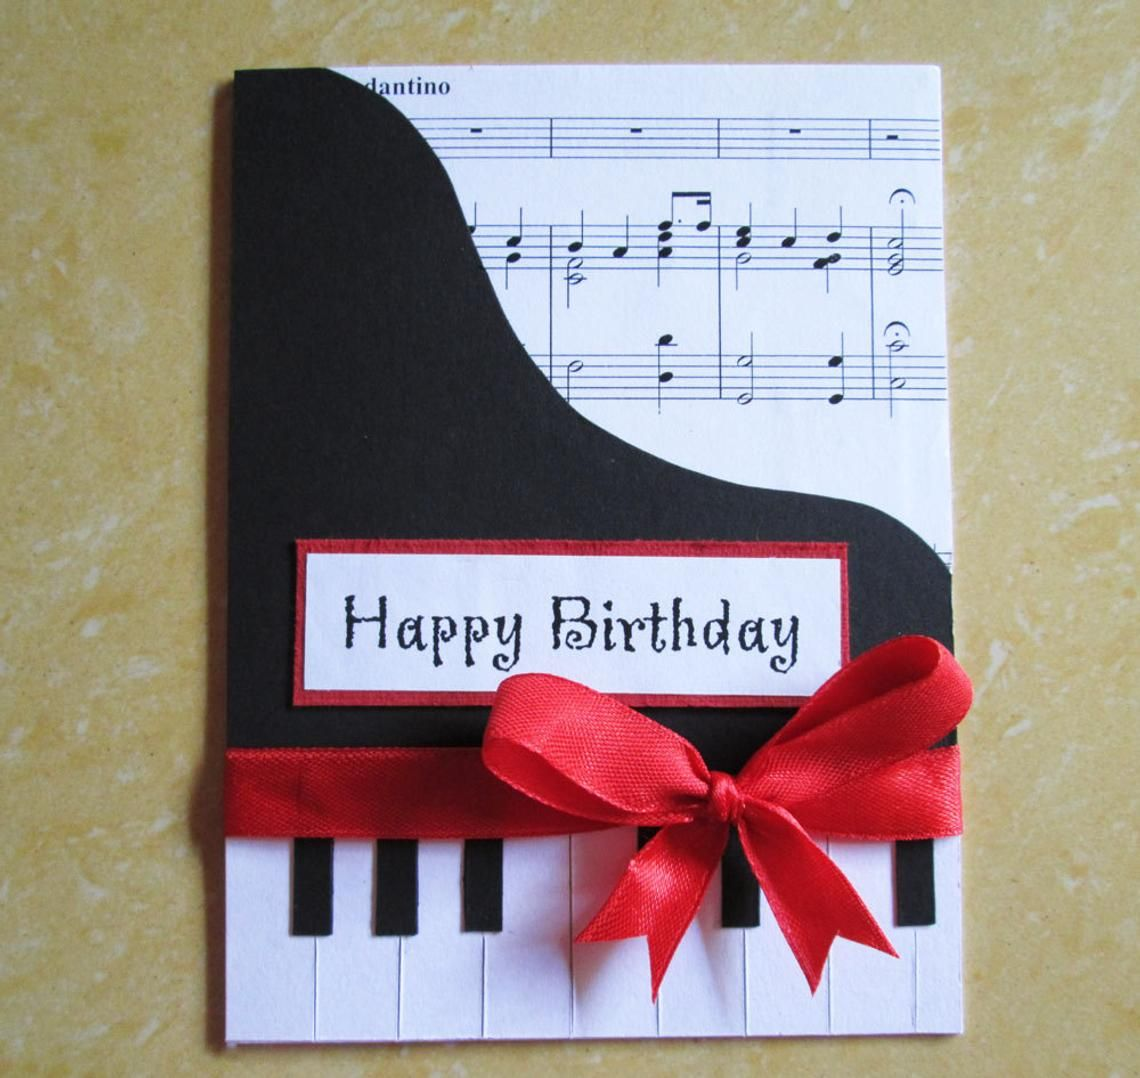 Strange Piano Happy Birthday Card Music Themed Birthday Greeting Card Personalised Birthday Cards Cominlily Jamesorg